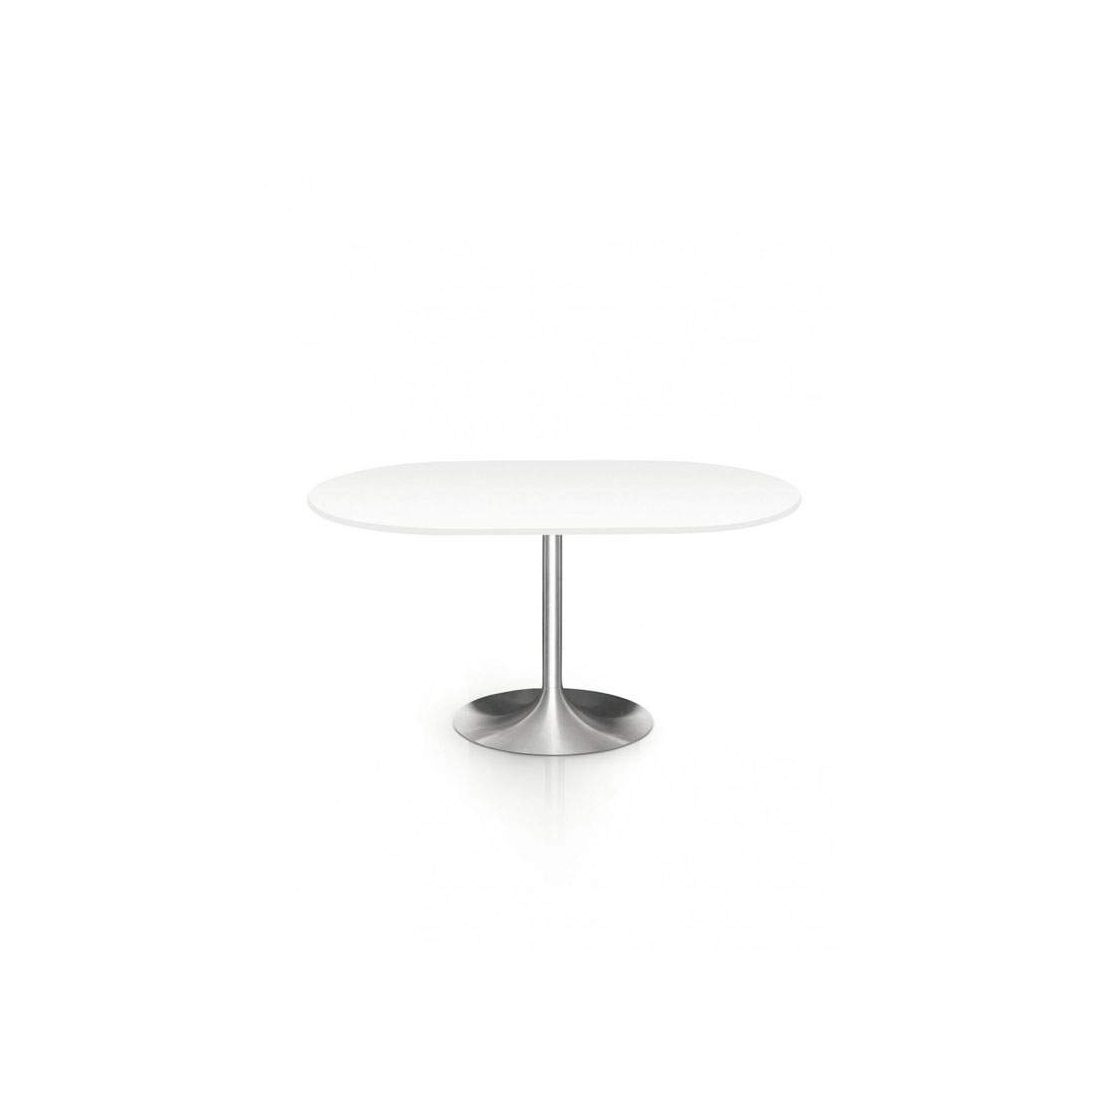 Table ronde salle a manger joe myyour zendart design - Table ronde a manger ...